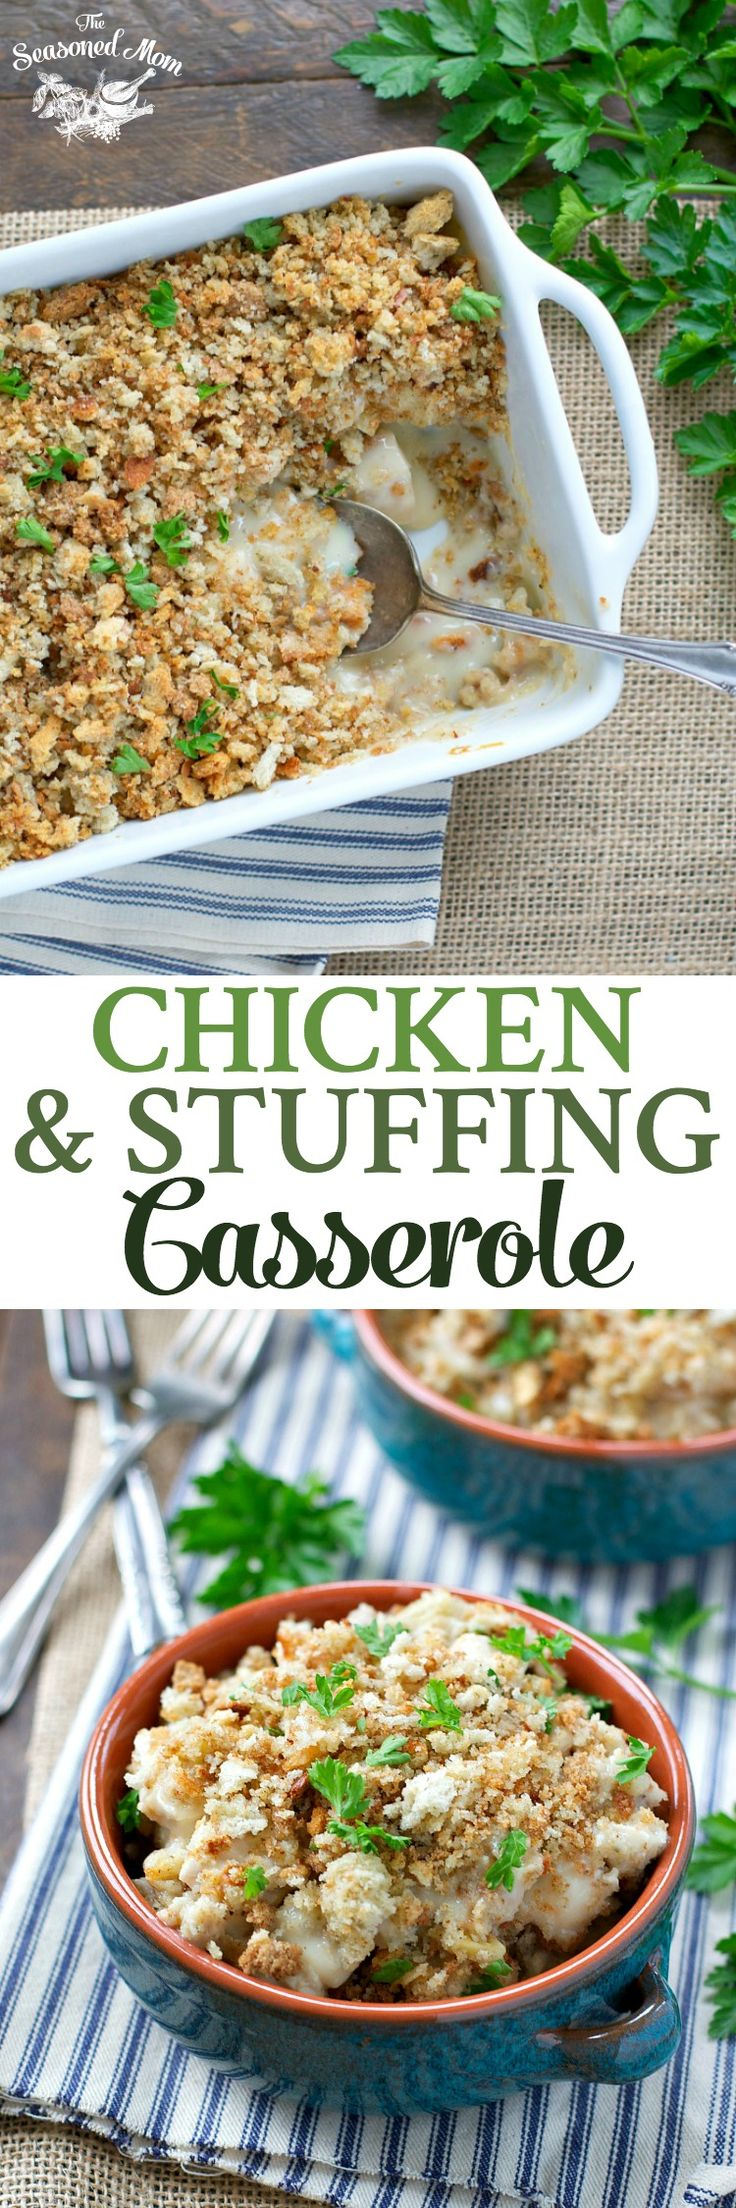 This Chicken and Stuffing Casserole is an easy dinner that has been loved by generations. Prepare the comfort food for a cozy weeknight meal!